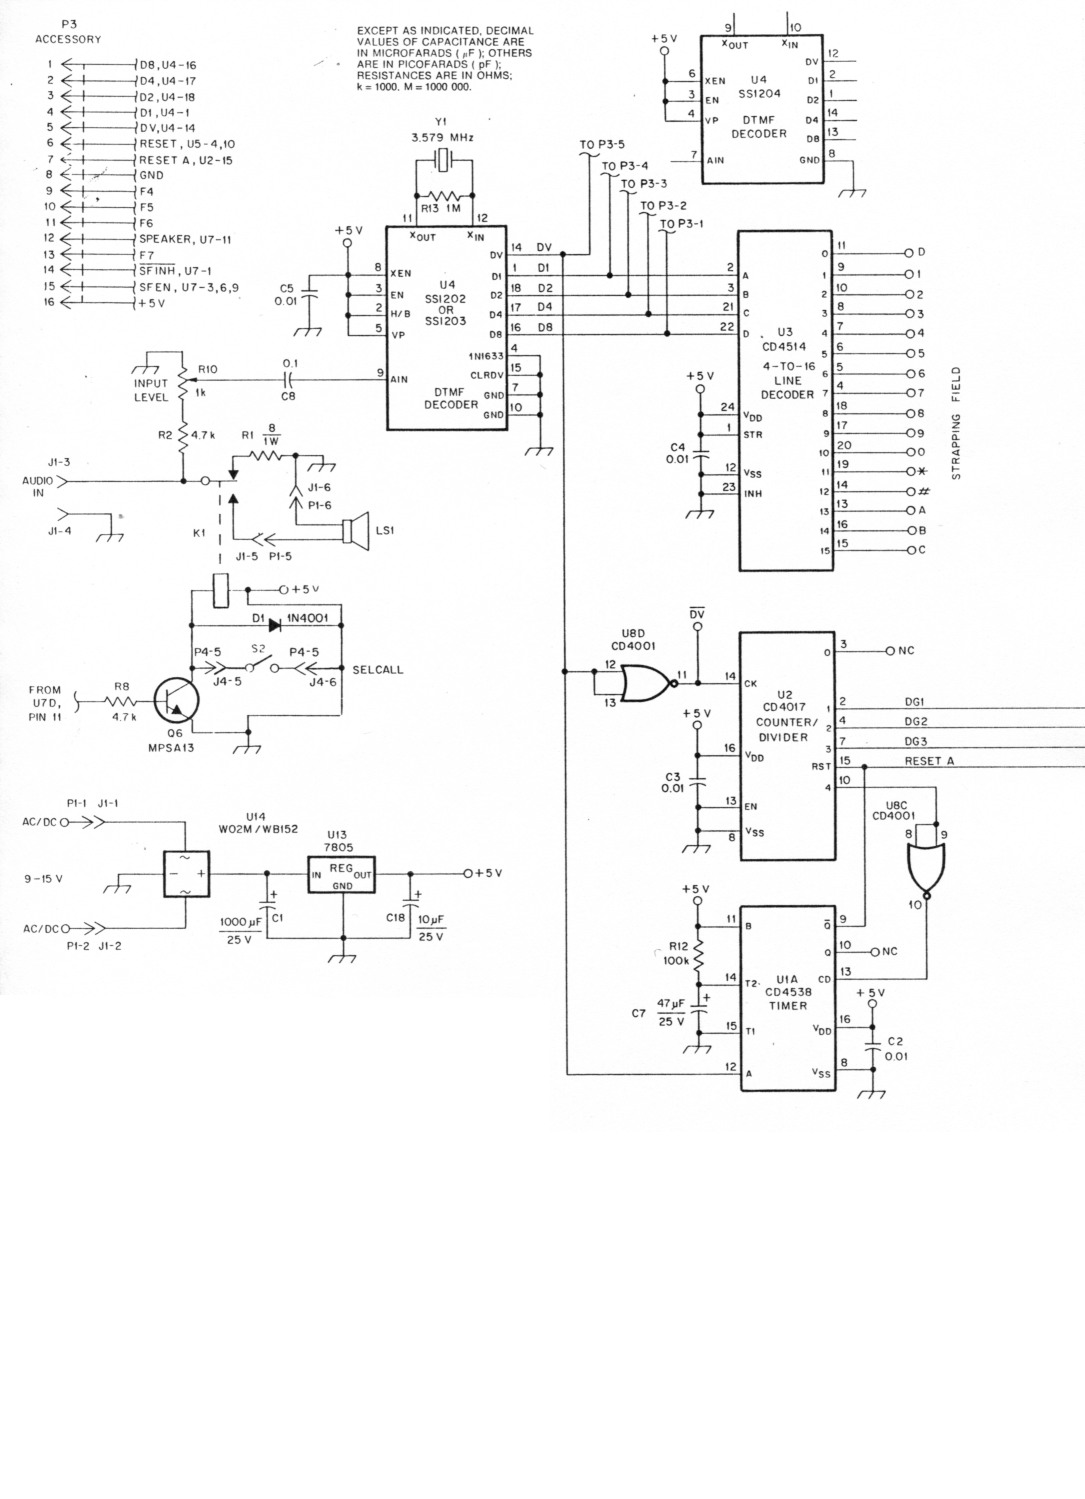 Professional Quality Dtmf Decoder And Selcall System Based Load Control Circuit Diagram Fig 1a 1b